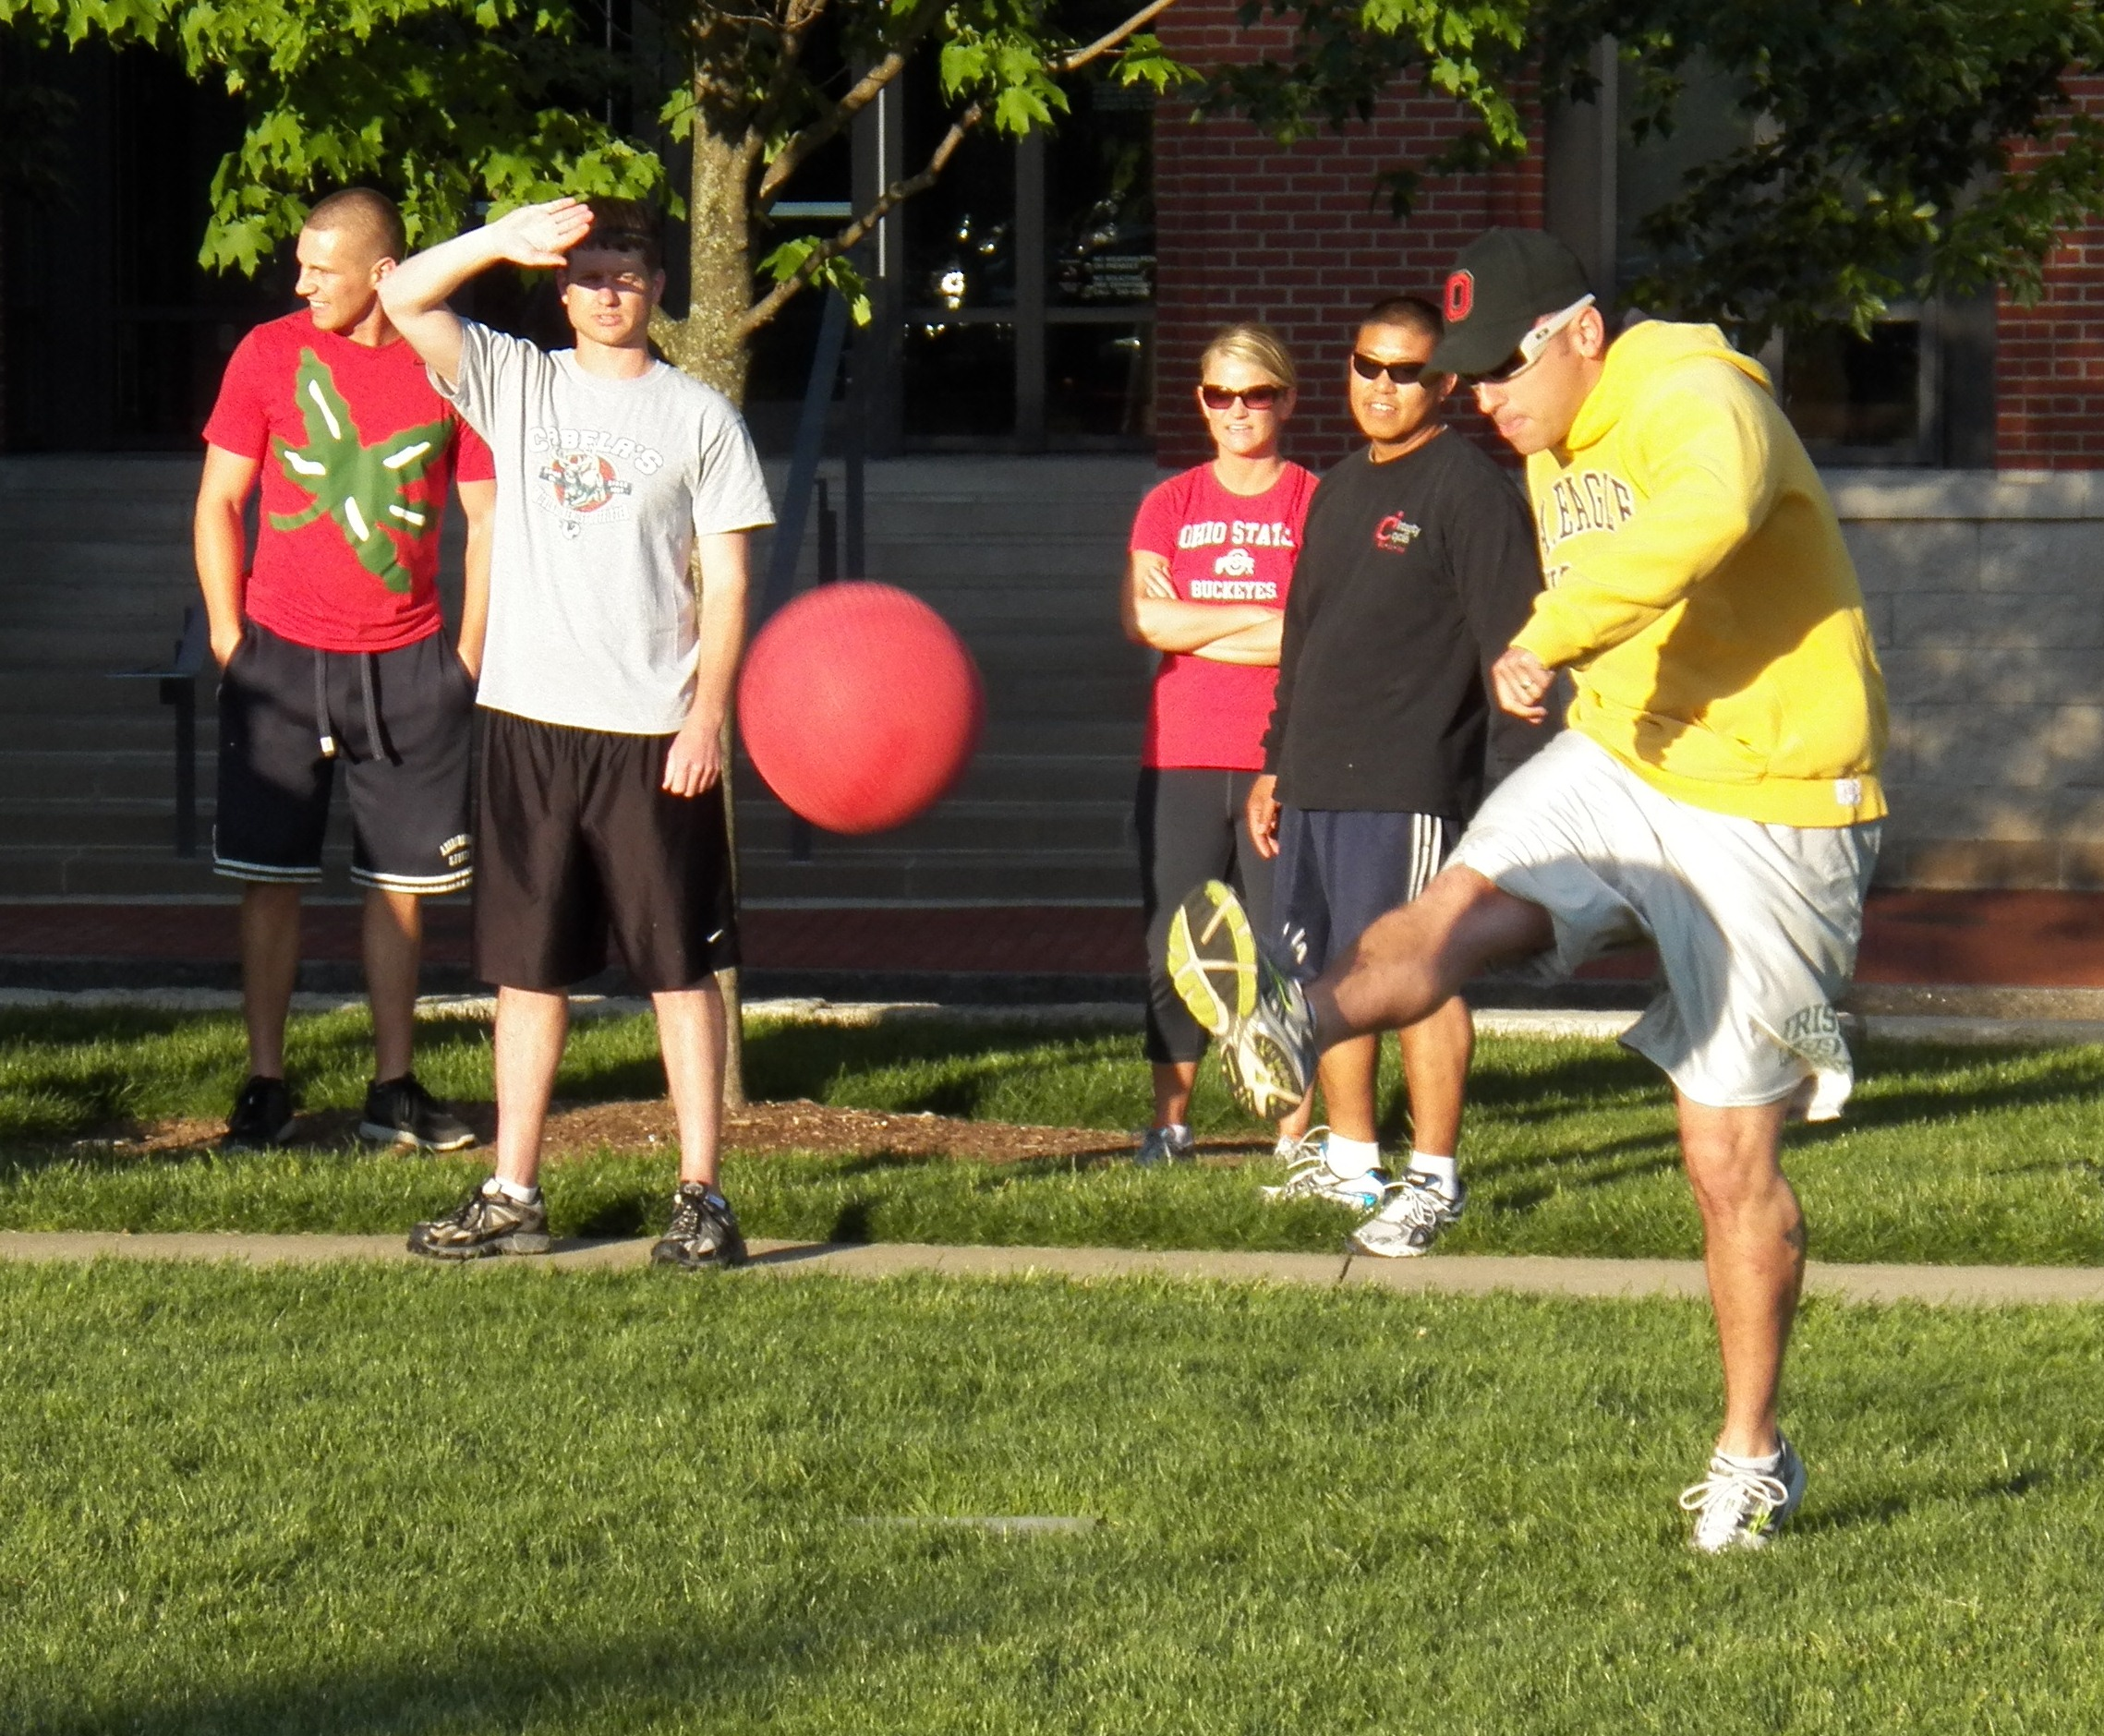 Clever Kickball Team Names